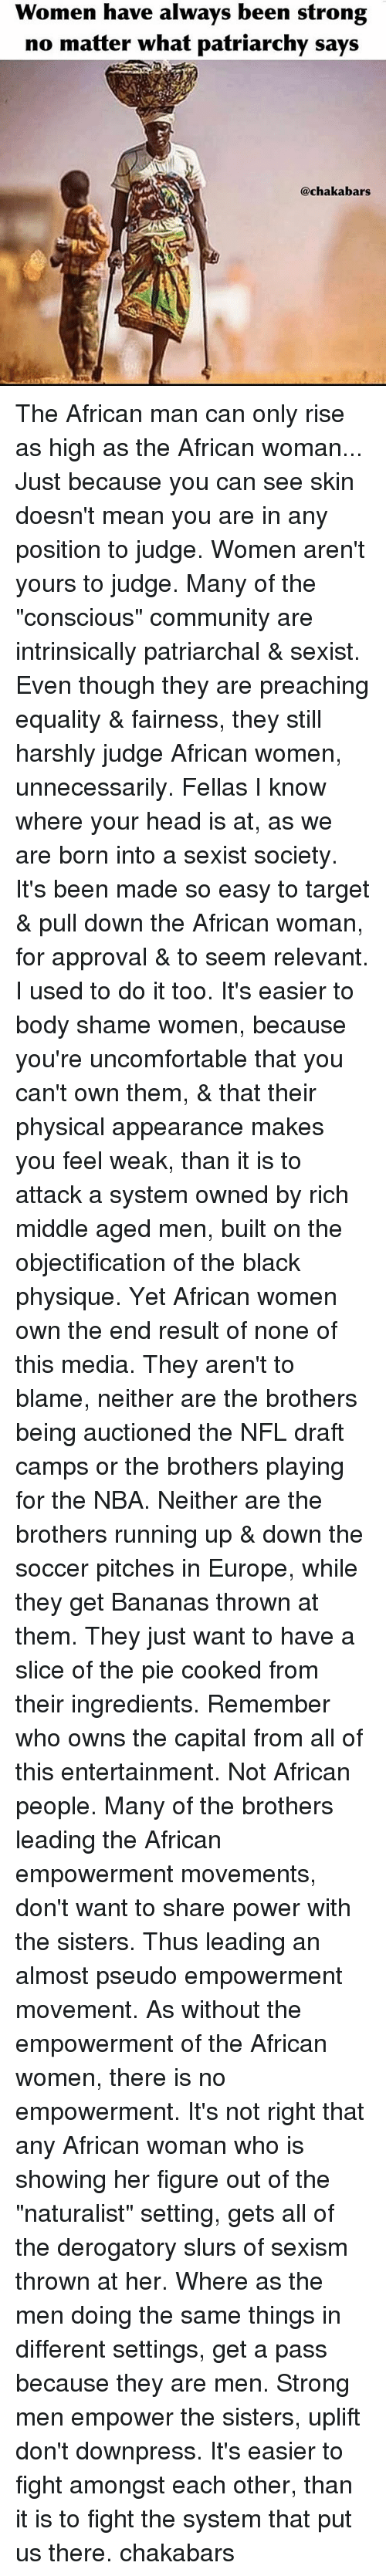 "Community, Head, and Memes: Women have always been strong  no matter what patriarchy says  @chakabars The African man can only rise as high as the African woman... Just because you can see skin doesn't mean you are in any position to judge. Women aren't yours to judge. Many of the ""conscious"" community are intrinsically patriarchal & sexist. Even though they are preaching equality & fairness, they still harshly judge African women, unnecessarily. Fellas I know where your head is at, as we are born into a sexist society. It's been made so easy to target & pull down the African woman, for approval & to seem relevant. I used to do it too. It's easier to body shame women, because you're uncomfortable that you can't own them, & that their physical appearance makes you feel weak, than it is to attack a system owned by rich middle aged men, built on the objectification of the black physique. Yet African women own the end result of none of this media. They aren't to blame, neither are the brothers being auctioned the NFL draft camps or the brothers playing for the NBA. Neither are the brothers running up & down the soccer pitches in Europe, while they get Bananas thrown at them. They just want to have a slice of the pie cooked from their ingredients. Remember who owns the capital from all of this entertainment. Not African people. Many of the brothers leading the African empowerment movements, don't want to share power with the sisters. Thus leading an almost pseudo empowerment movement. As without the empowerment of the African women, there is no empowerment. It's not right that any African woman who is showing her figure out of the ""naturalist"" setting, gets all of the derogatory slurs of sexism thrown at her. Where as the men doing the same things in different settings, get a pass because they are men. Strong men empower the sisters, uplift don't downpress. It's easier to fight amongst each other, than it is to fight the system that put us there. chakabars"